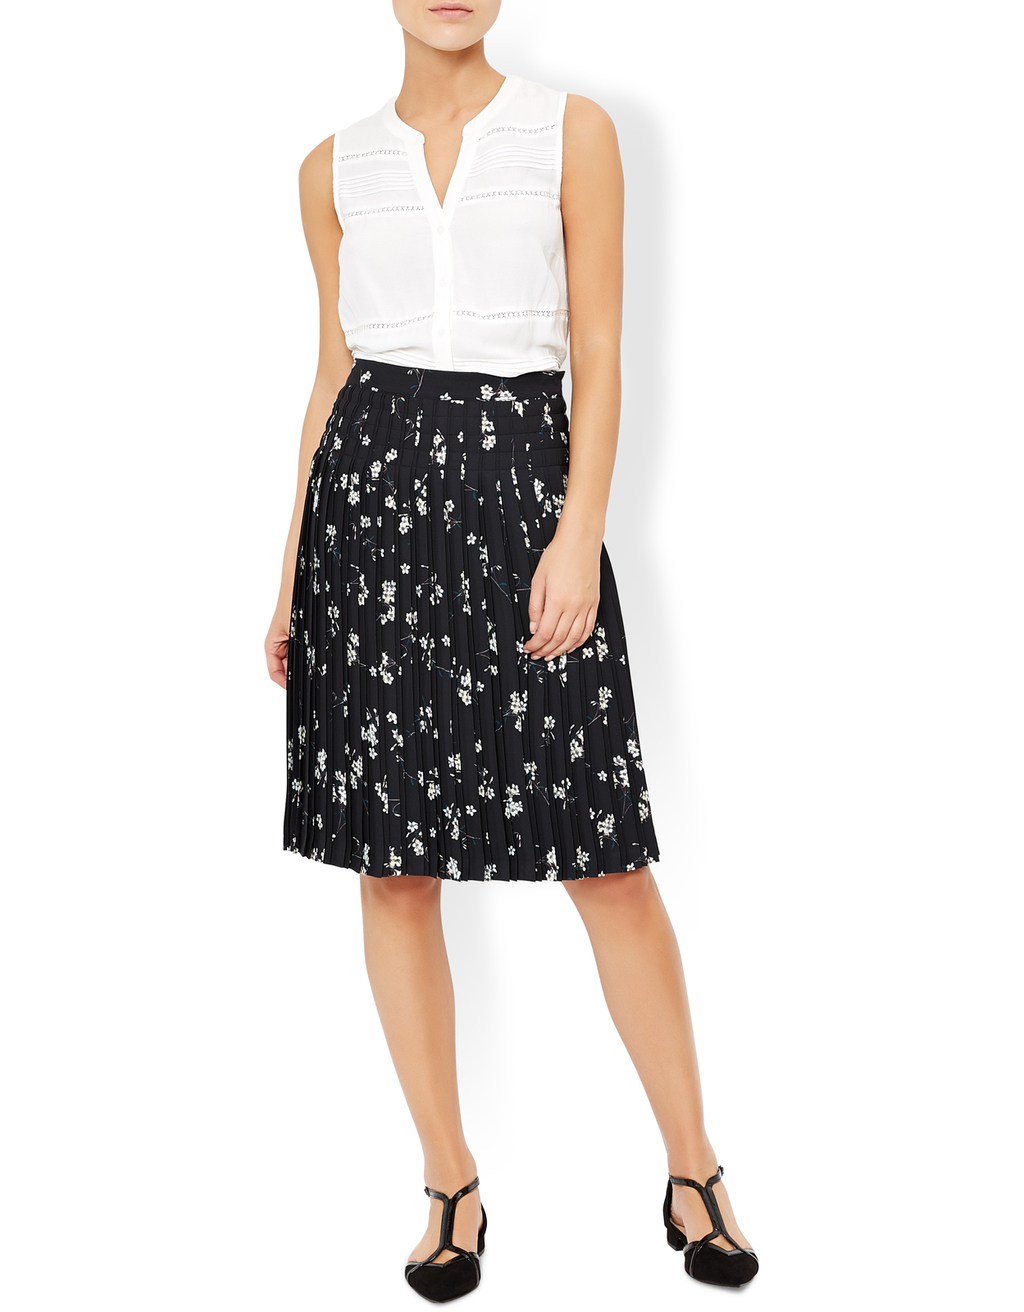 Bethany Pleat Print Skirt - fit: body skimming; style: pleated; waist: high rise; secondary colour: white; predominant colour: black; occasions: work; length: on the knee; fibres: polyester/polyamide - 100%; trends: monochrome; pattern type: fabric; pattern: patterned/print; texture group: other - light to midweight; pattern size: big & busy (bottom); season: a/w 2016; wardrobe: highlight